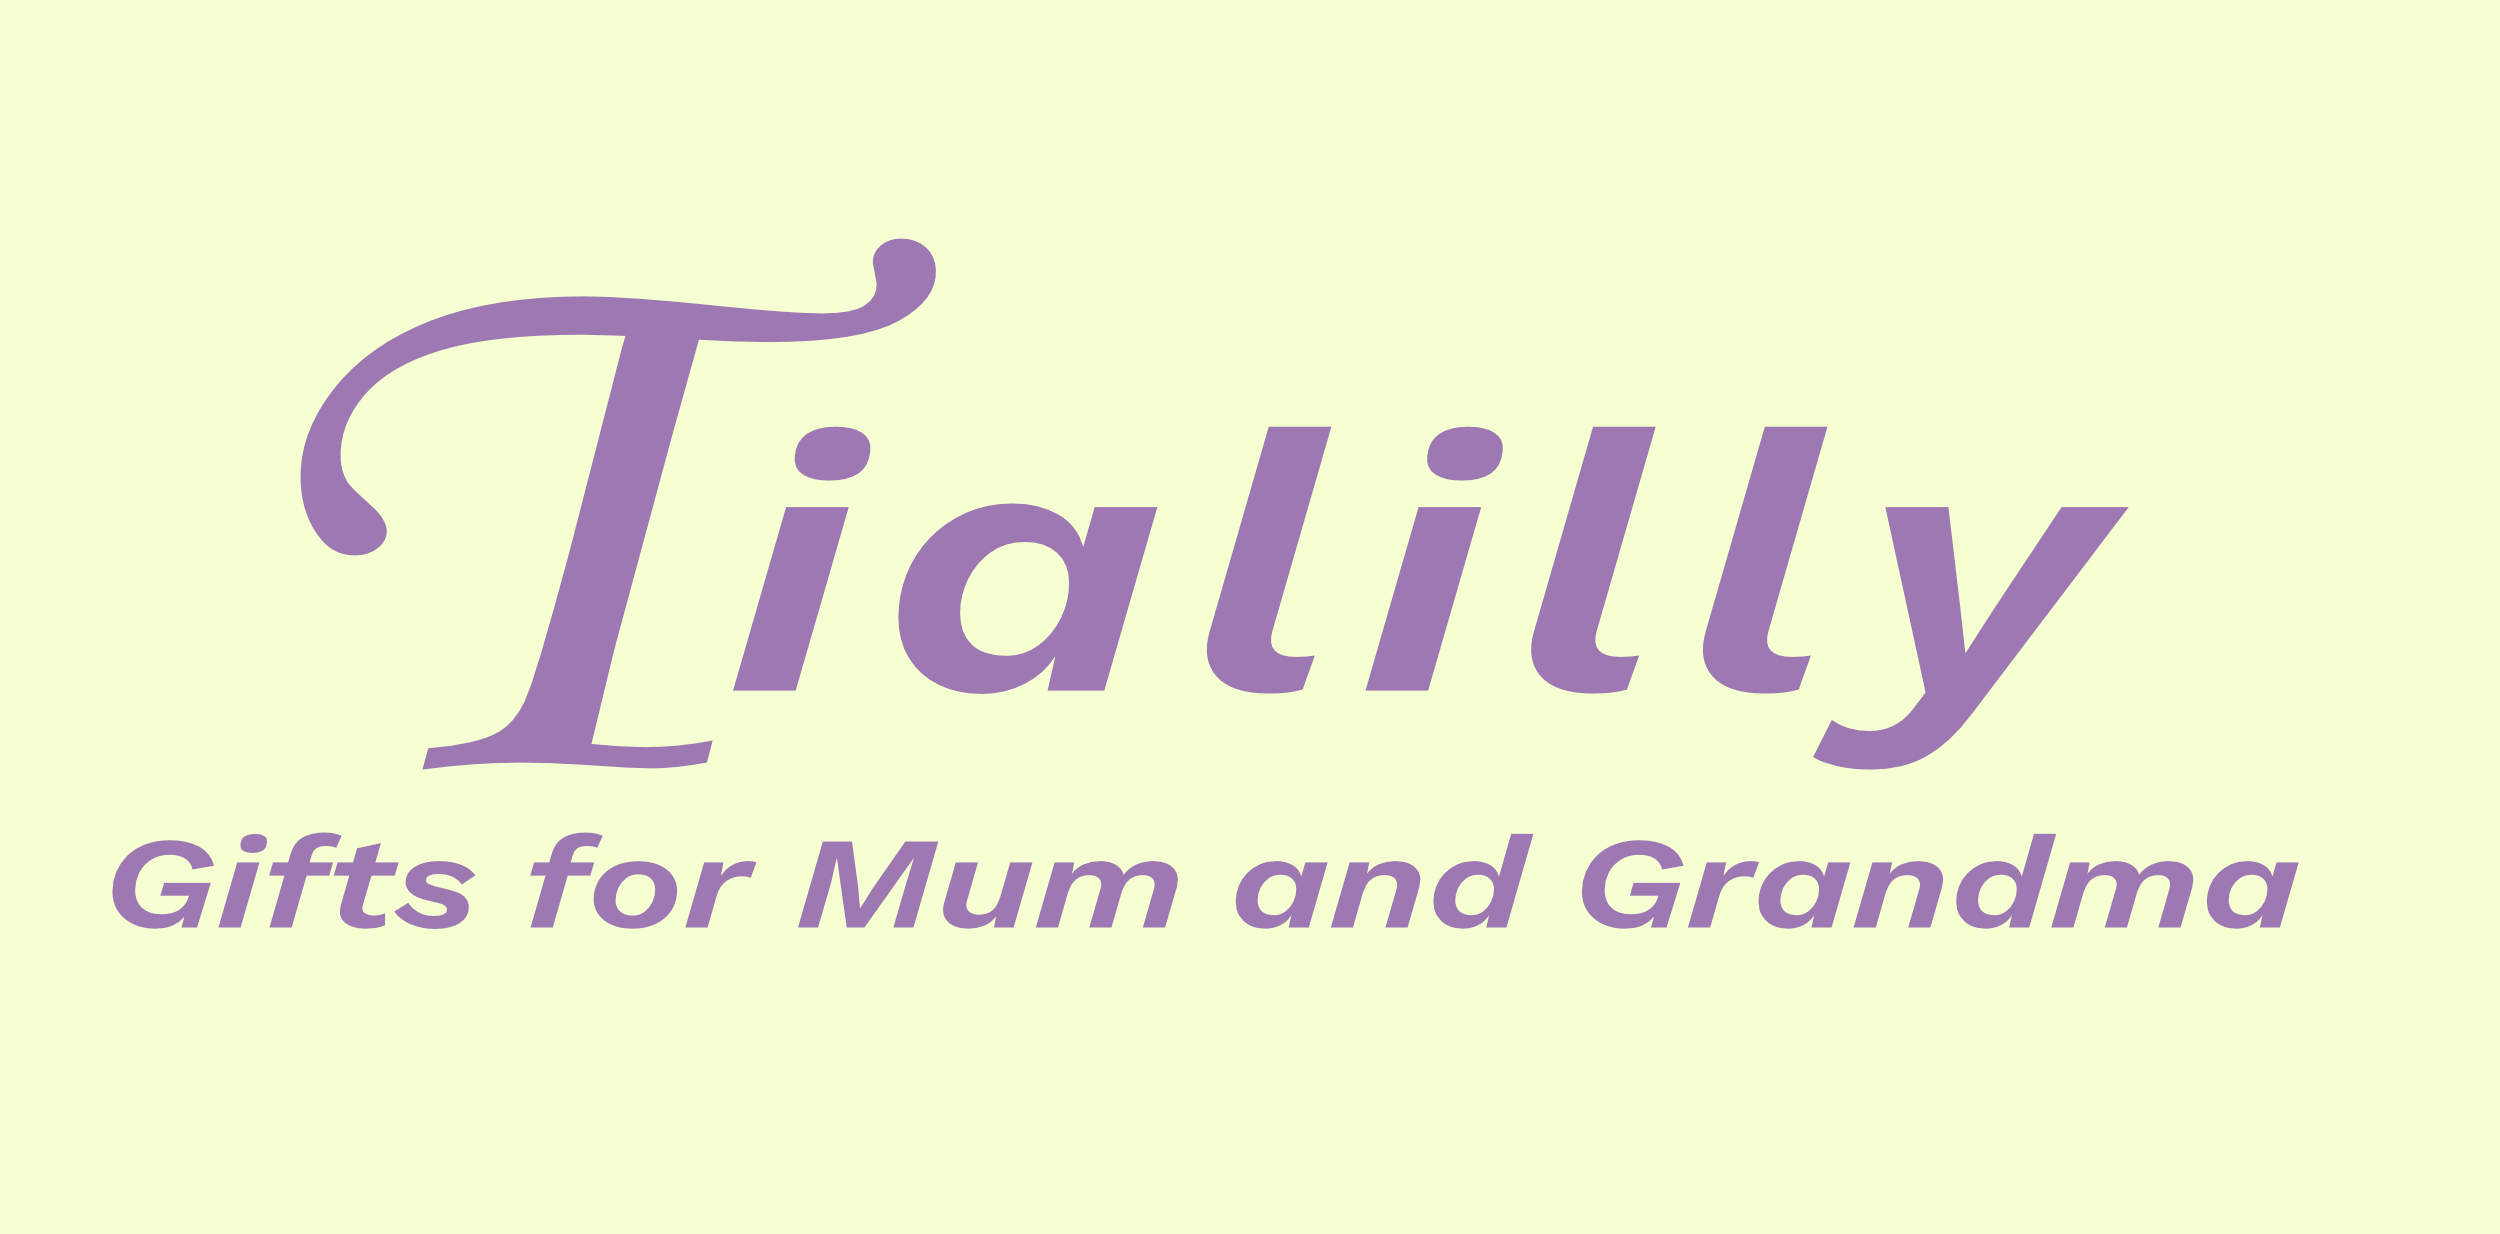 Tialilly Gifts for Mum and Grandma shop logo